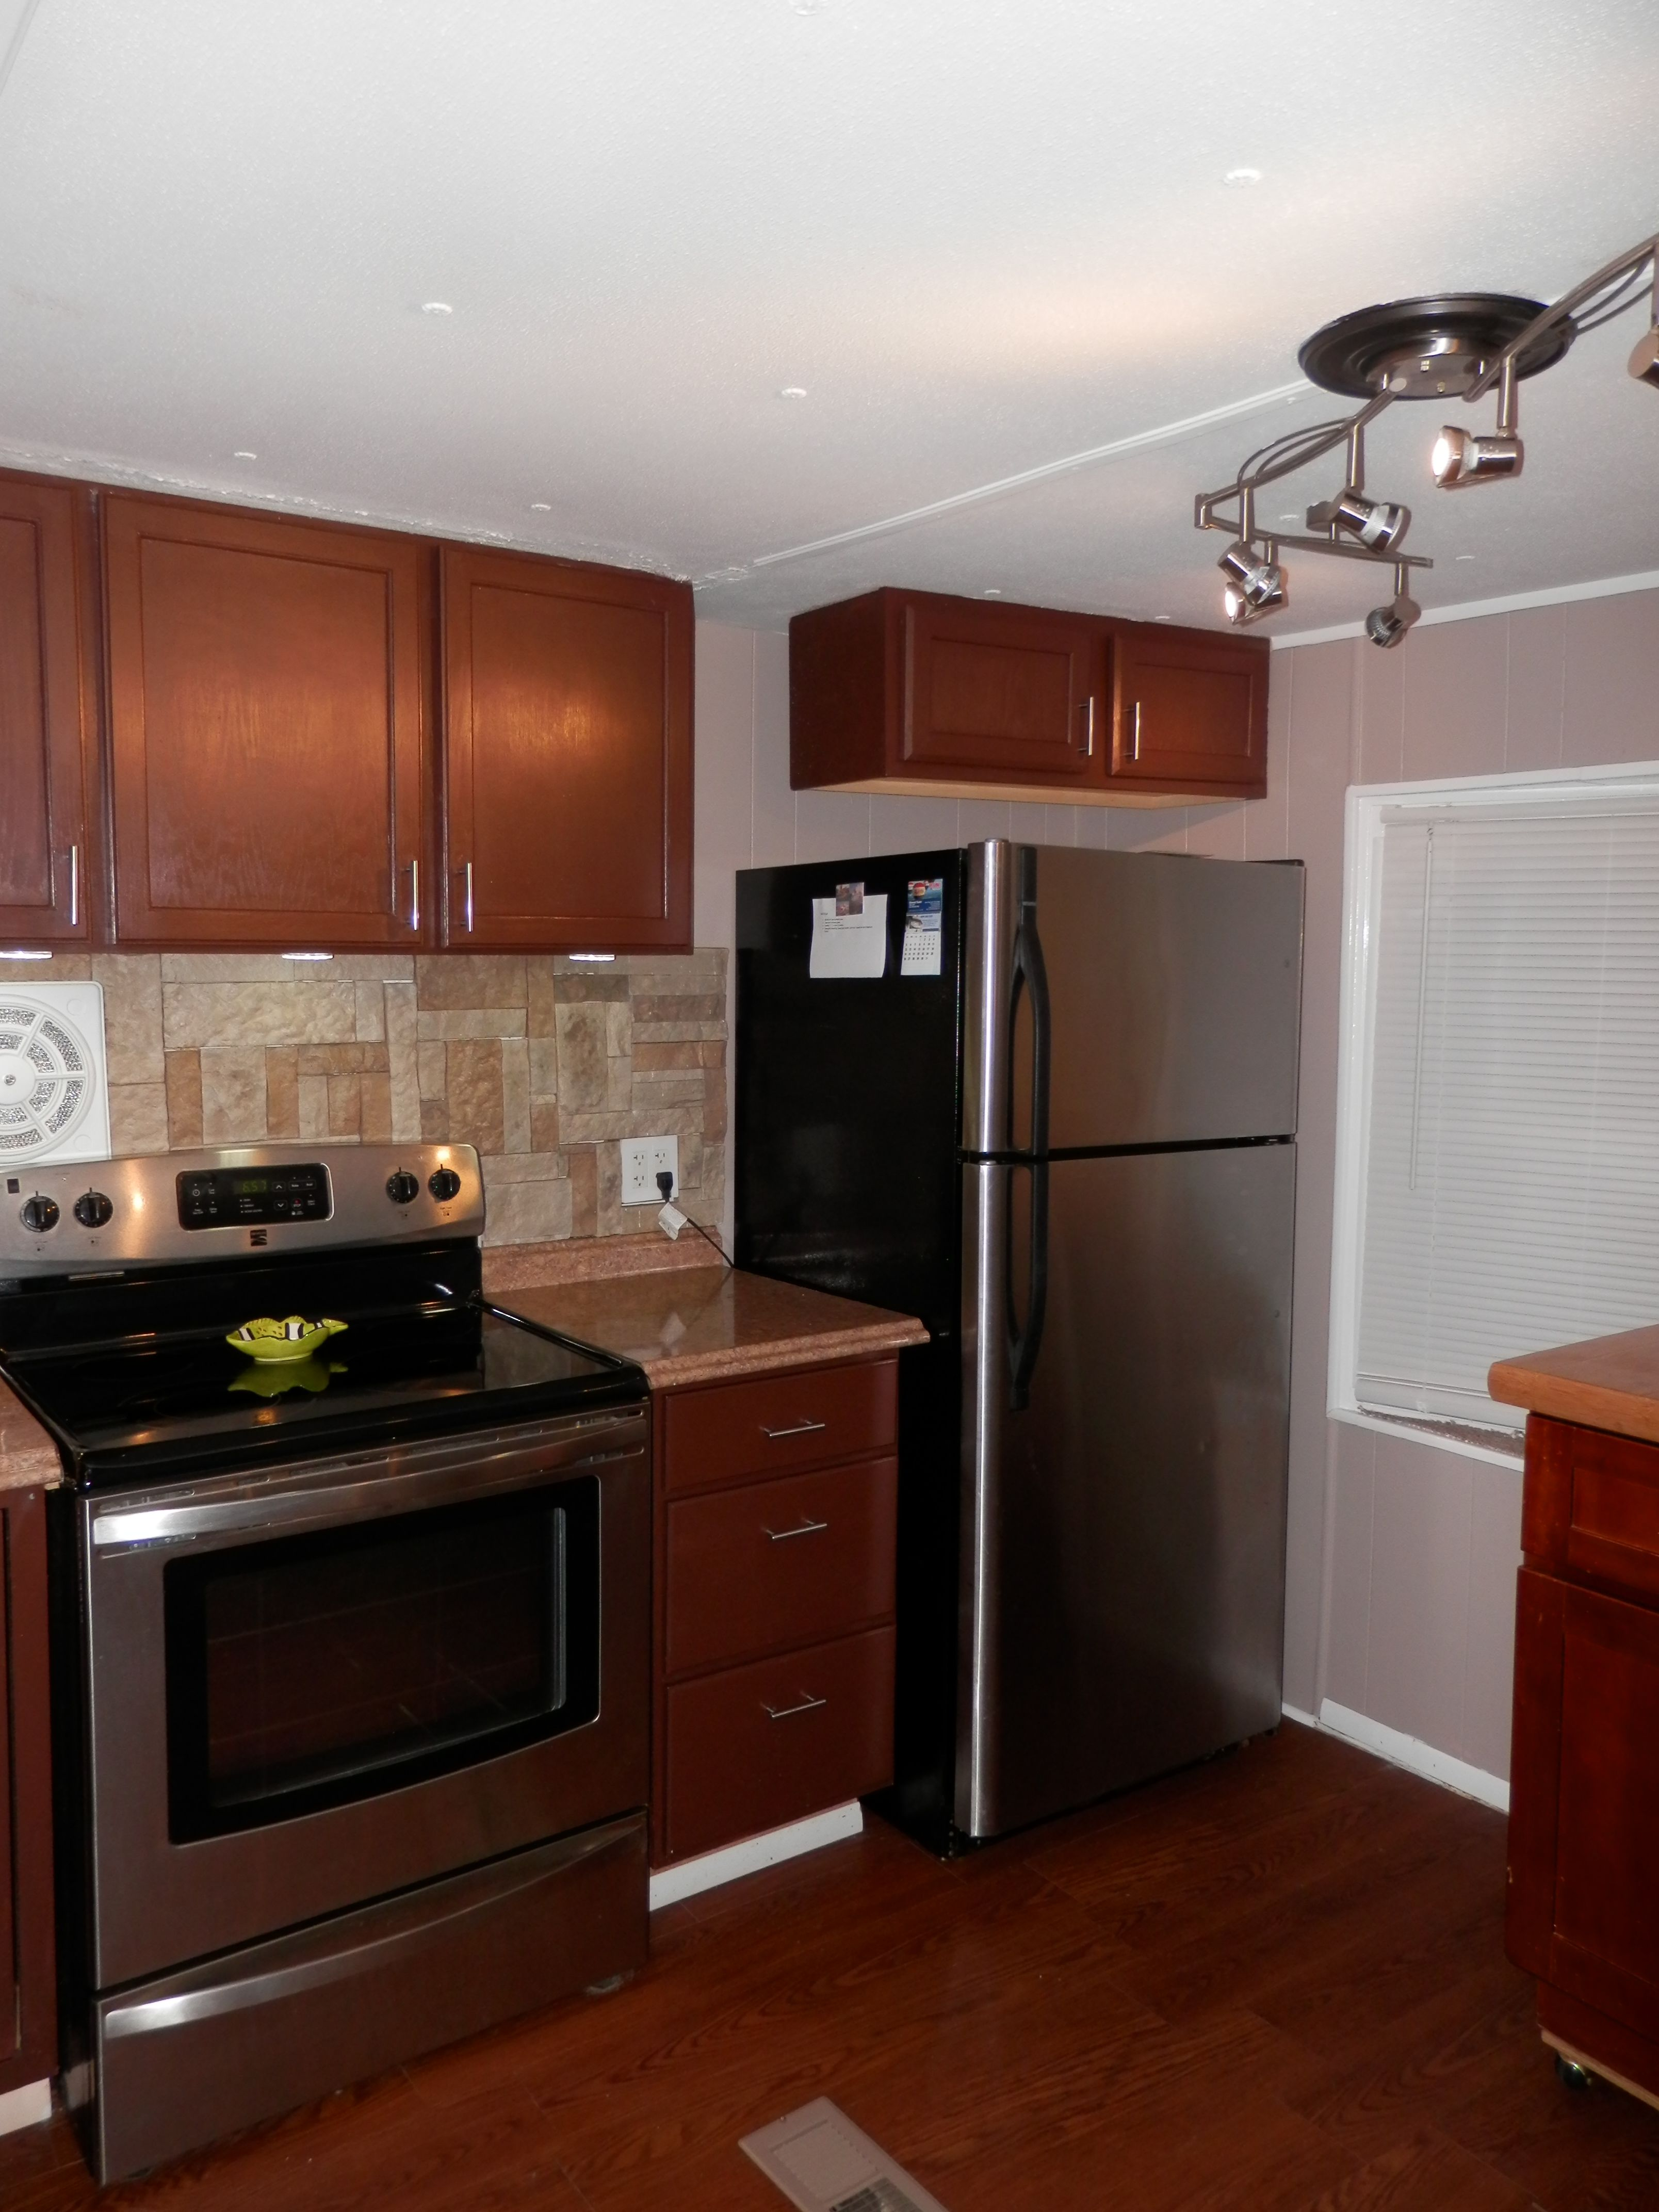 1973 Mobile Home Remodel Done With 2000 Budget.html